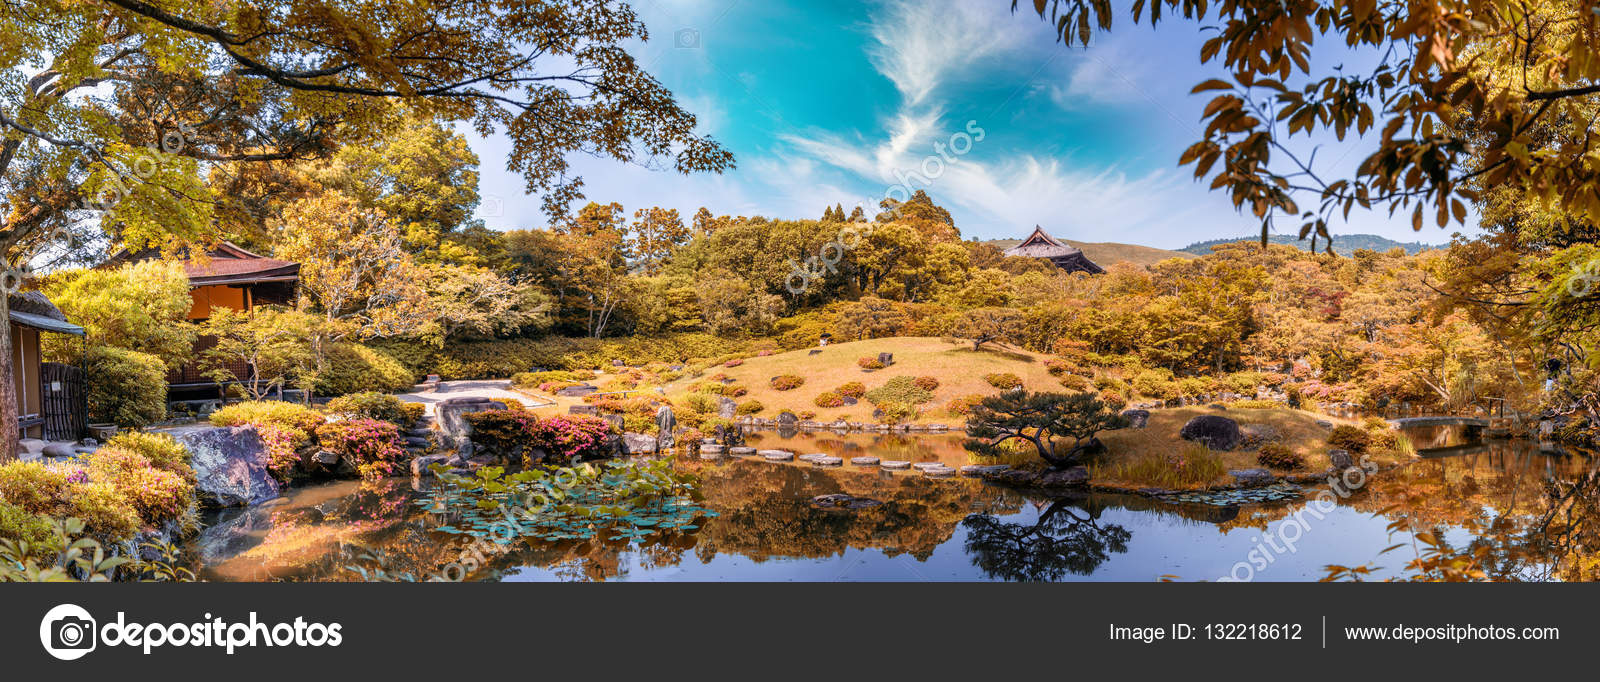 Nara, Japan - UNESCO World Heritage Site. Isuien Garden from Mei ...